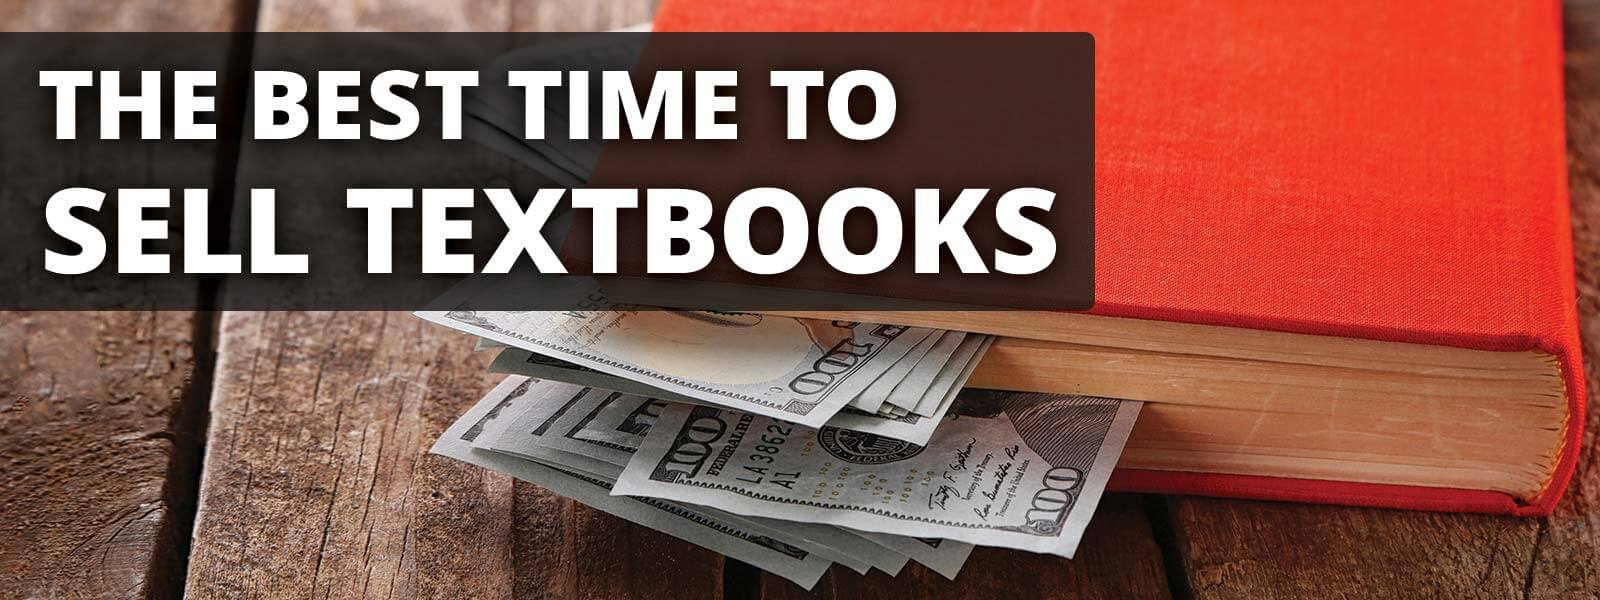 A book laying on a table with cash in the pages, with 'The Best Time to Sell Textbooks' overlayed on top